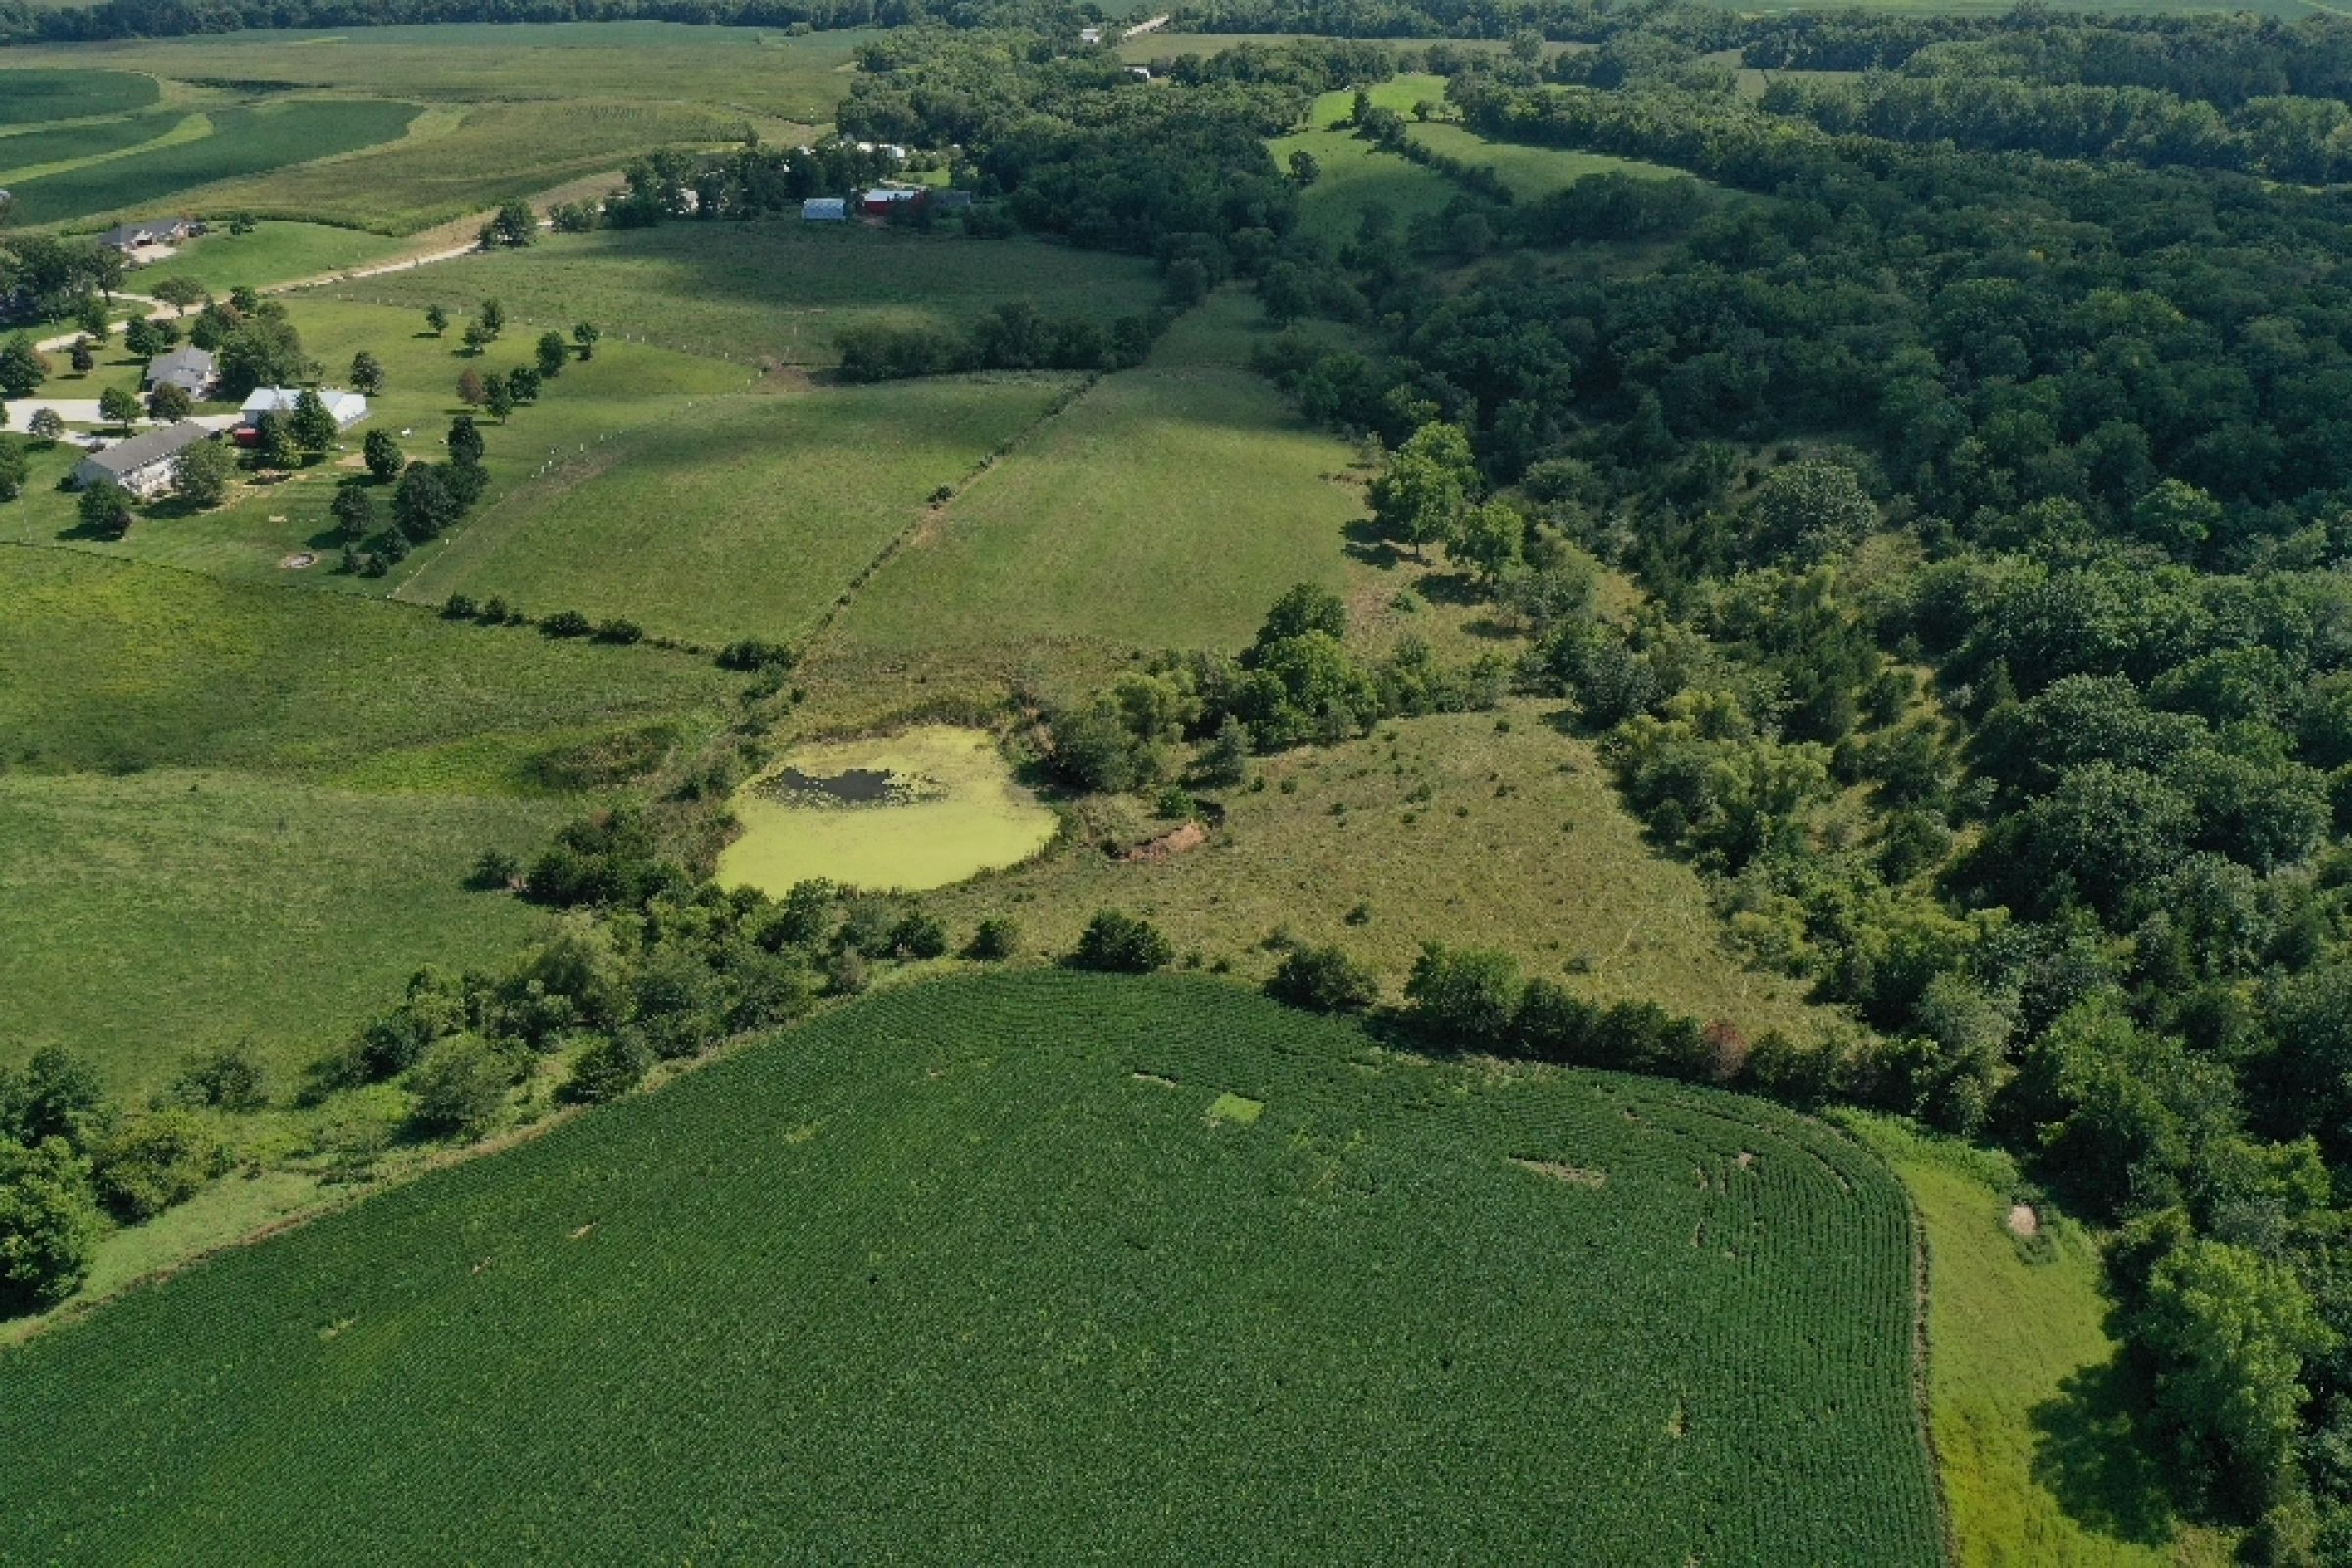 residential-land-warren-county-iowa-29-acres-listing-number-15120-6-2020-08-20-195122.jpg